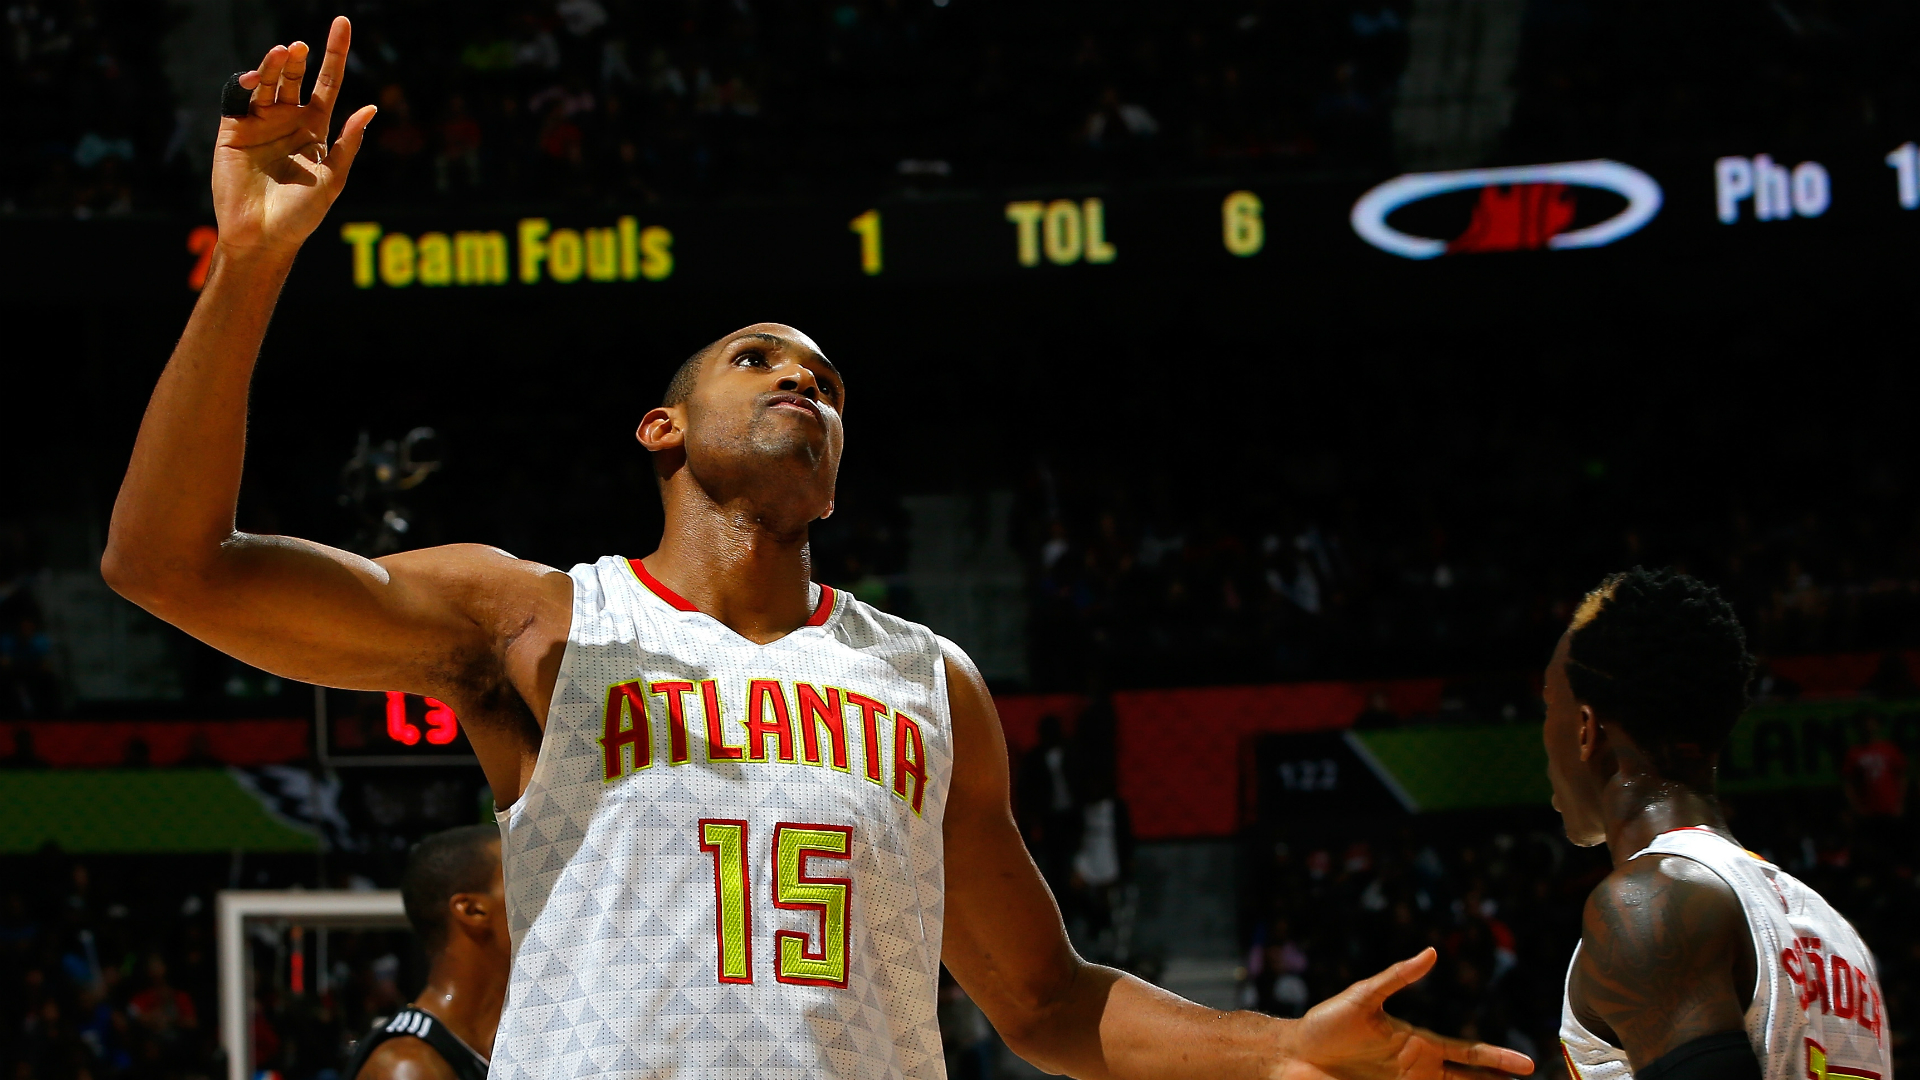 nba free agency: al horford will sign with celtics, validating